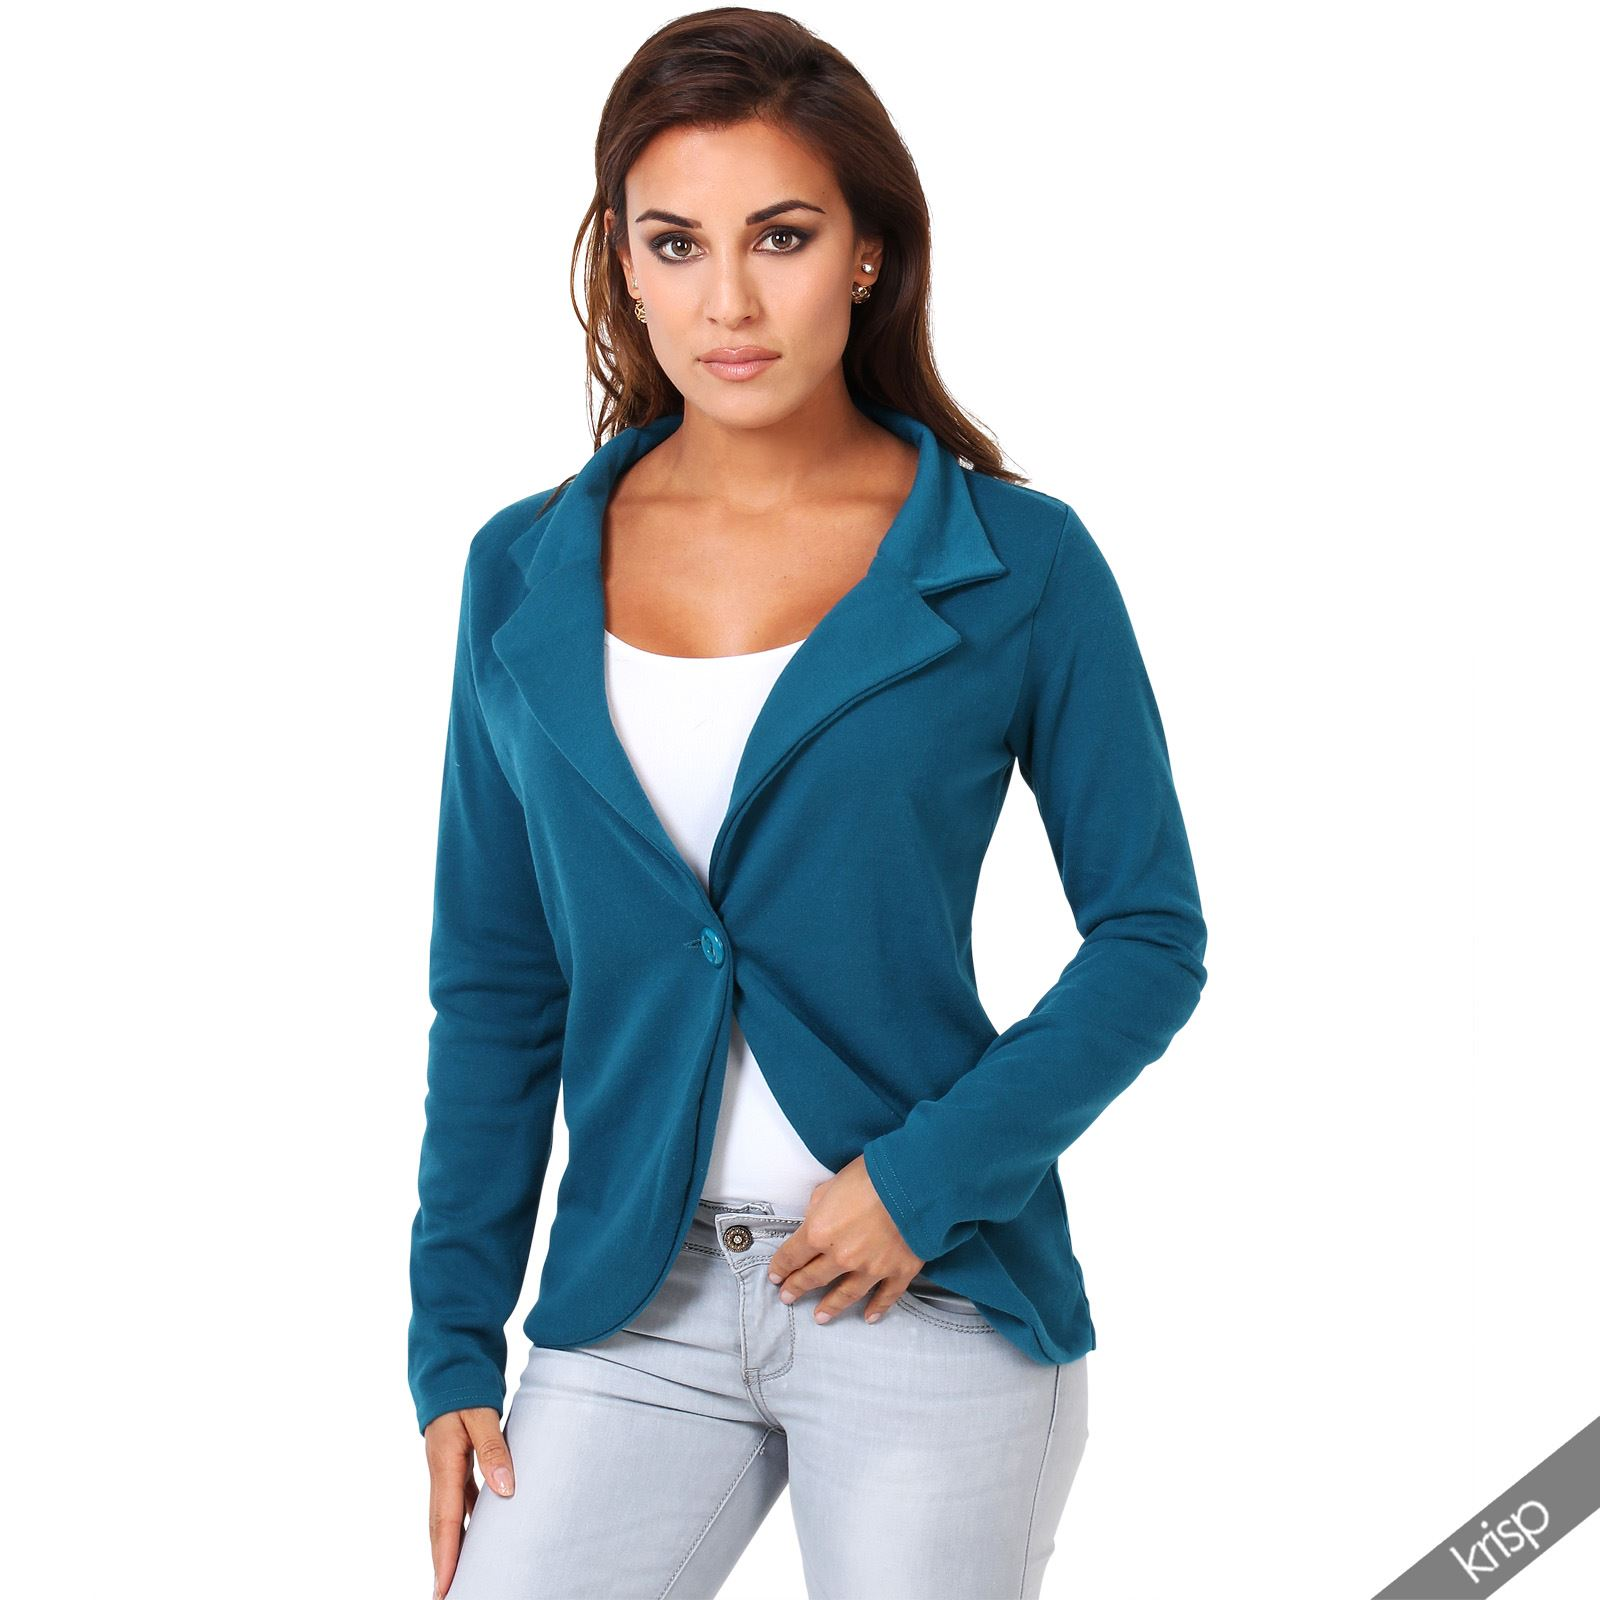 Womens Blazer Party Summer Jacket Button Front Tailored ...